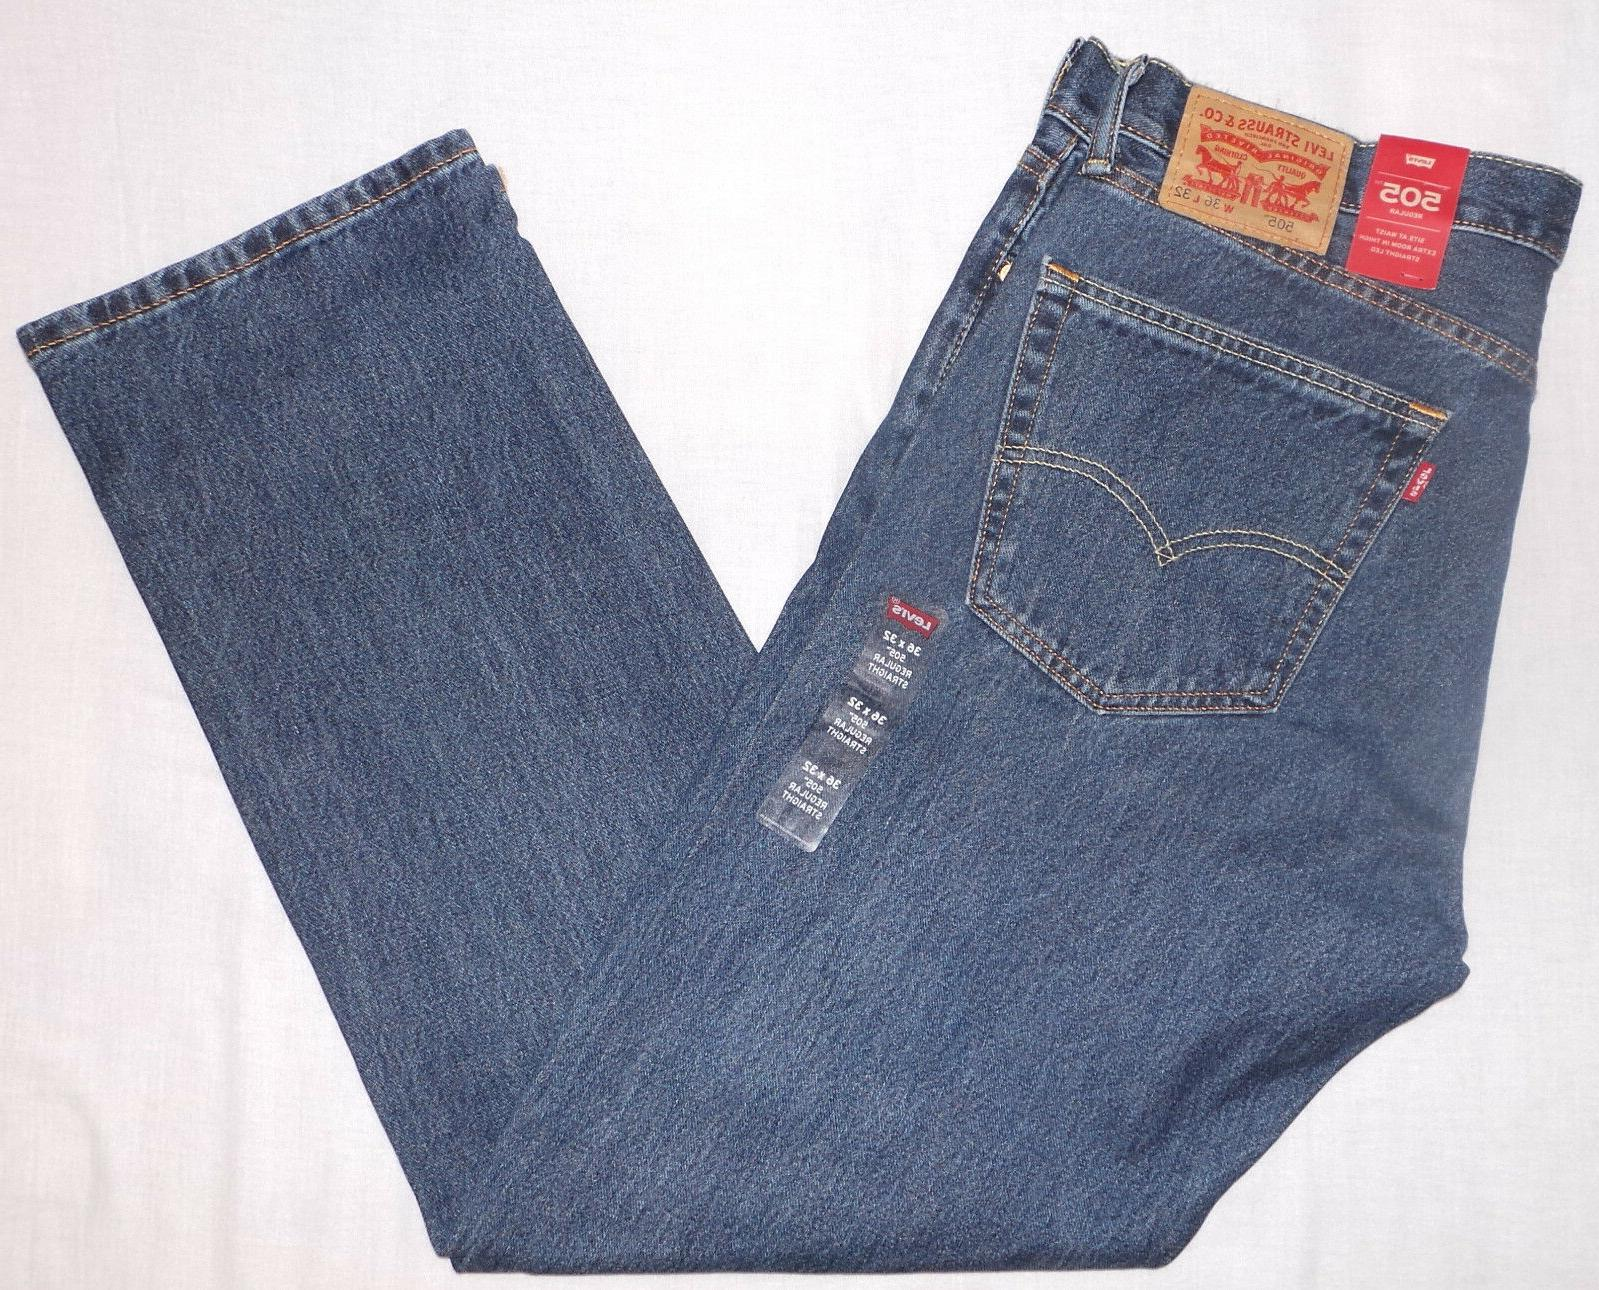 Levi's Men's 505 Regular Fit-Jeans, Dark Stonewash, 36W x 32